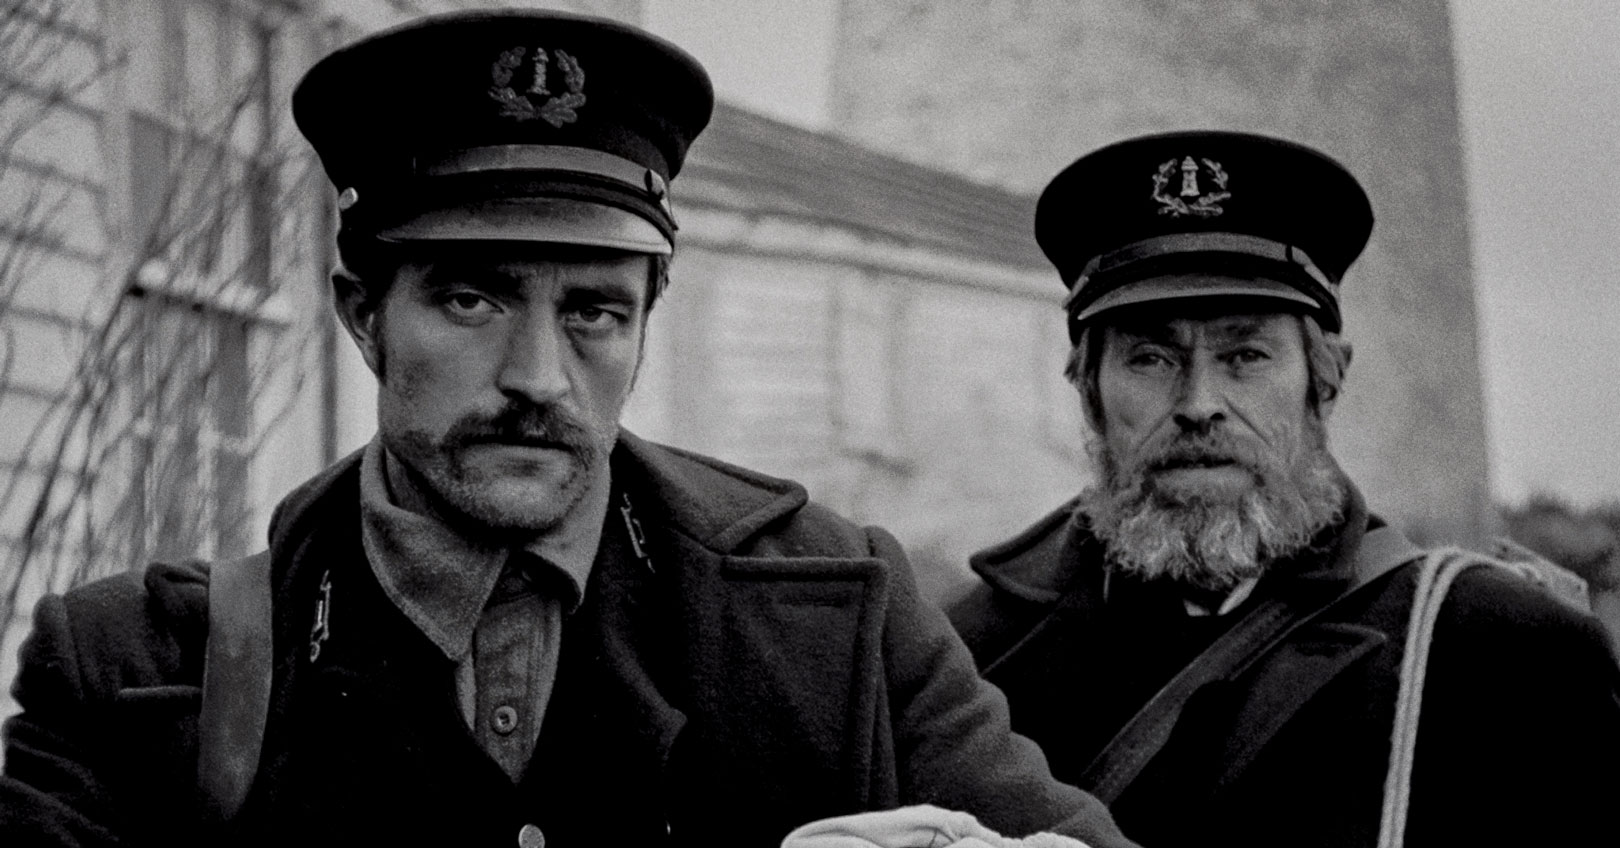 The Lighthouse - Robert Pattinson and Willem Dafoe